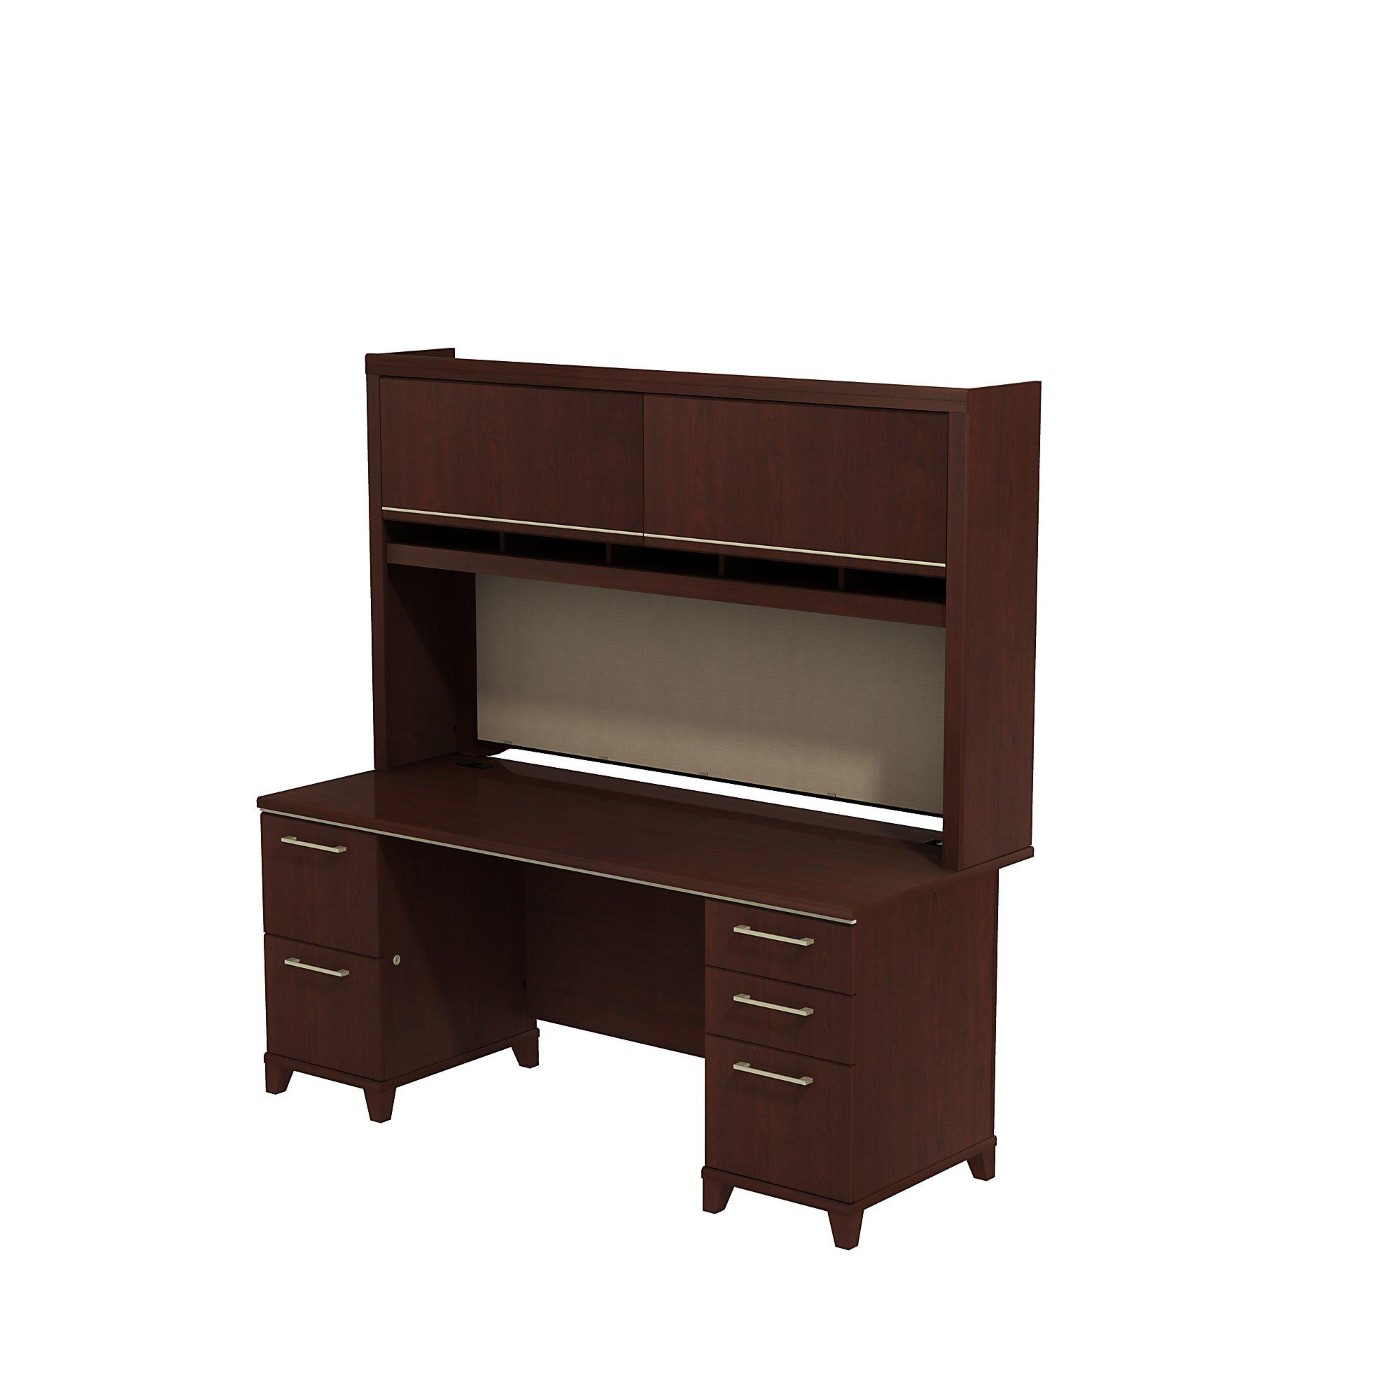 BUSH BUSINESS FURNITURE ENTERPRISE 72W X 30D OFFICE DESK WITH HUTCH AND 2 PEDESTALS #EH-ENT006CS. FREE SHIPPING</font></b></font></b>&#x1F384<font color=red><b>ERGONOMICHOME HOLIDAY SALE - ENDS DEC. 17, 2019</b></font>&#x1F384